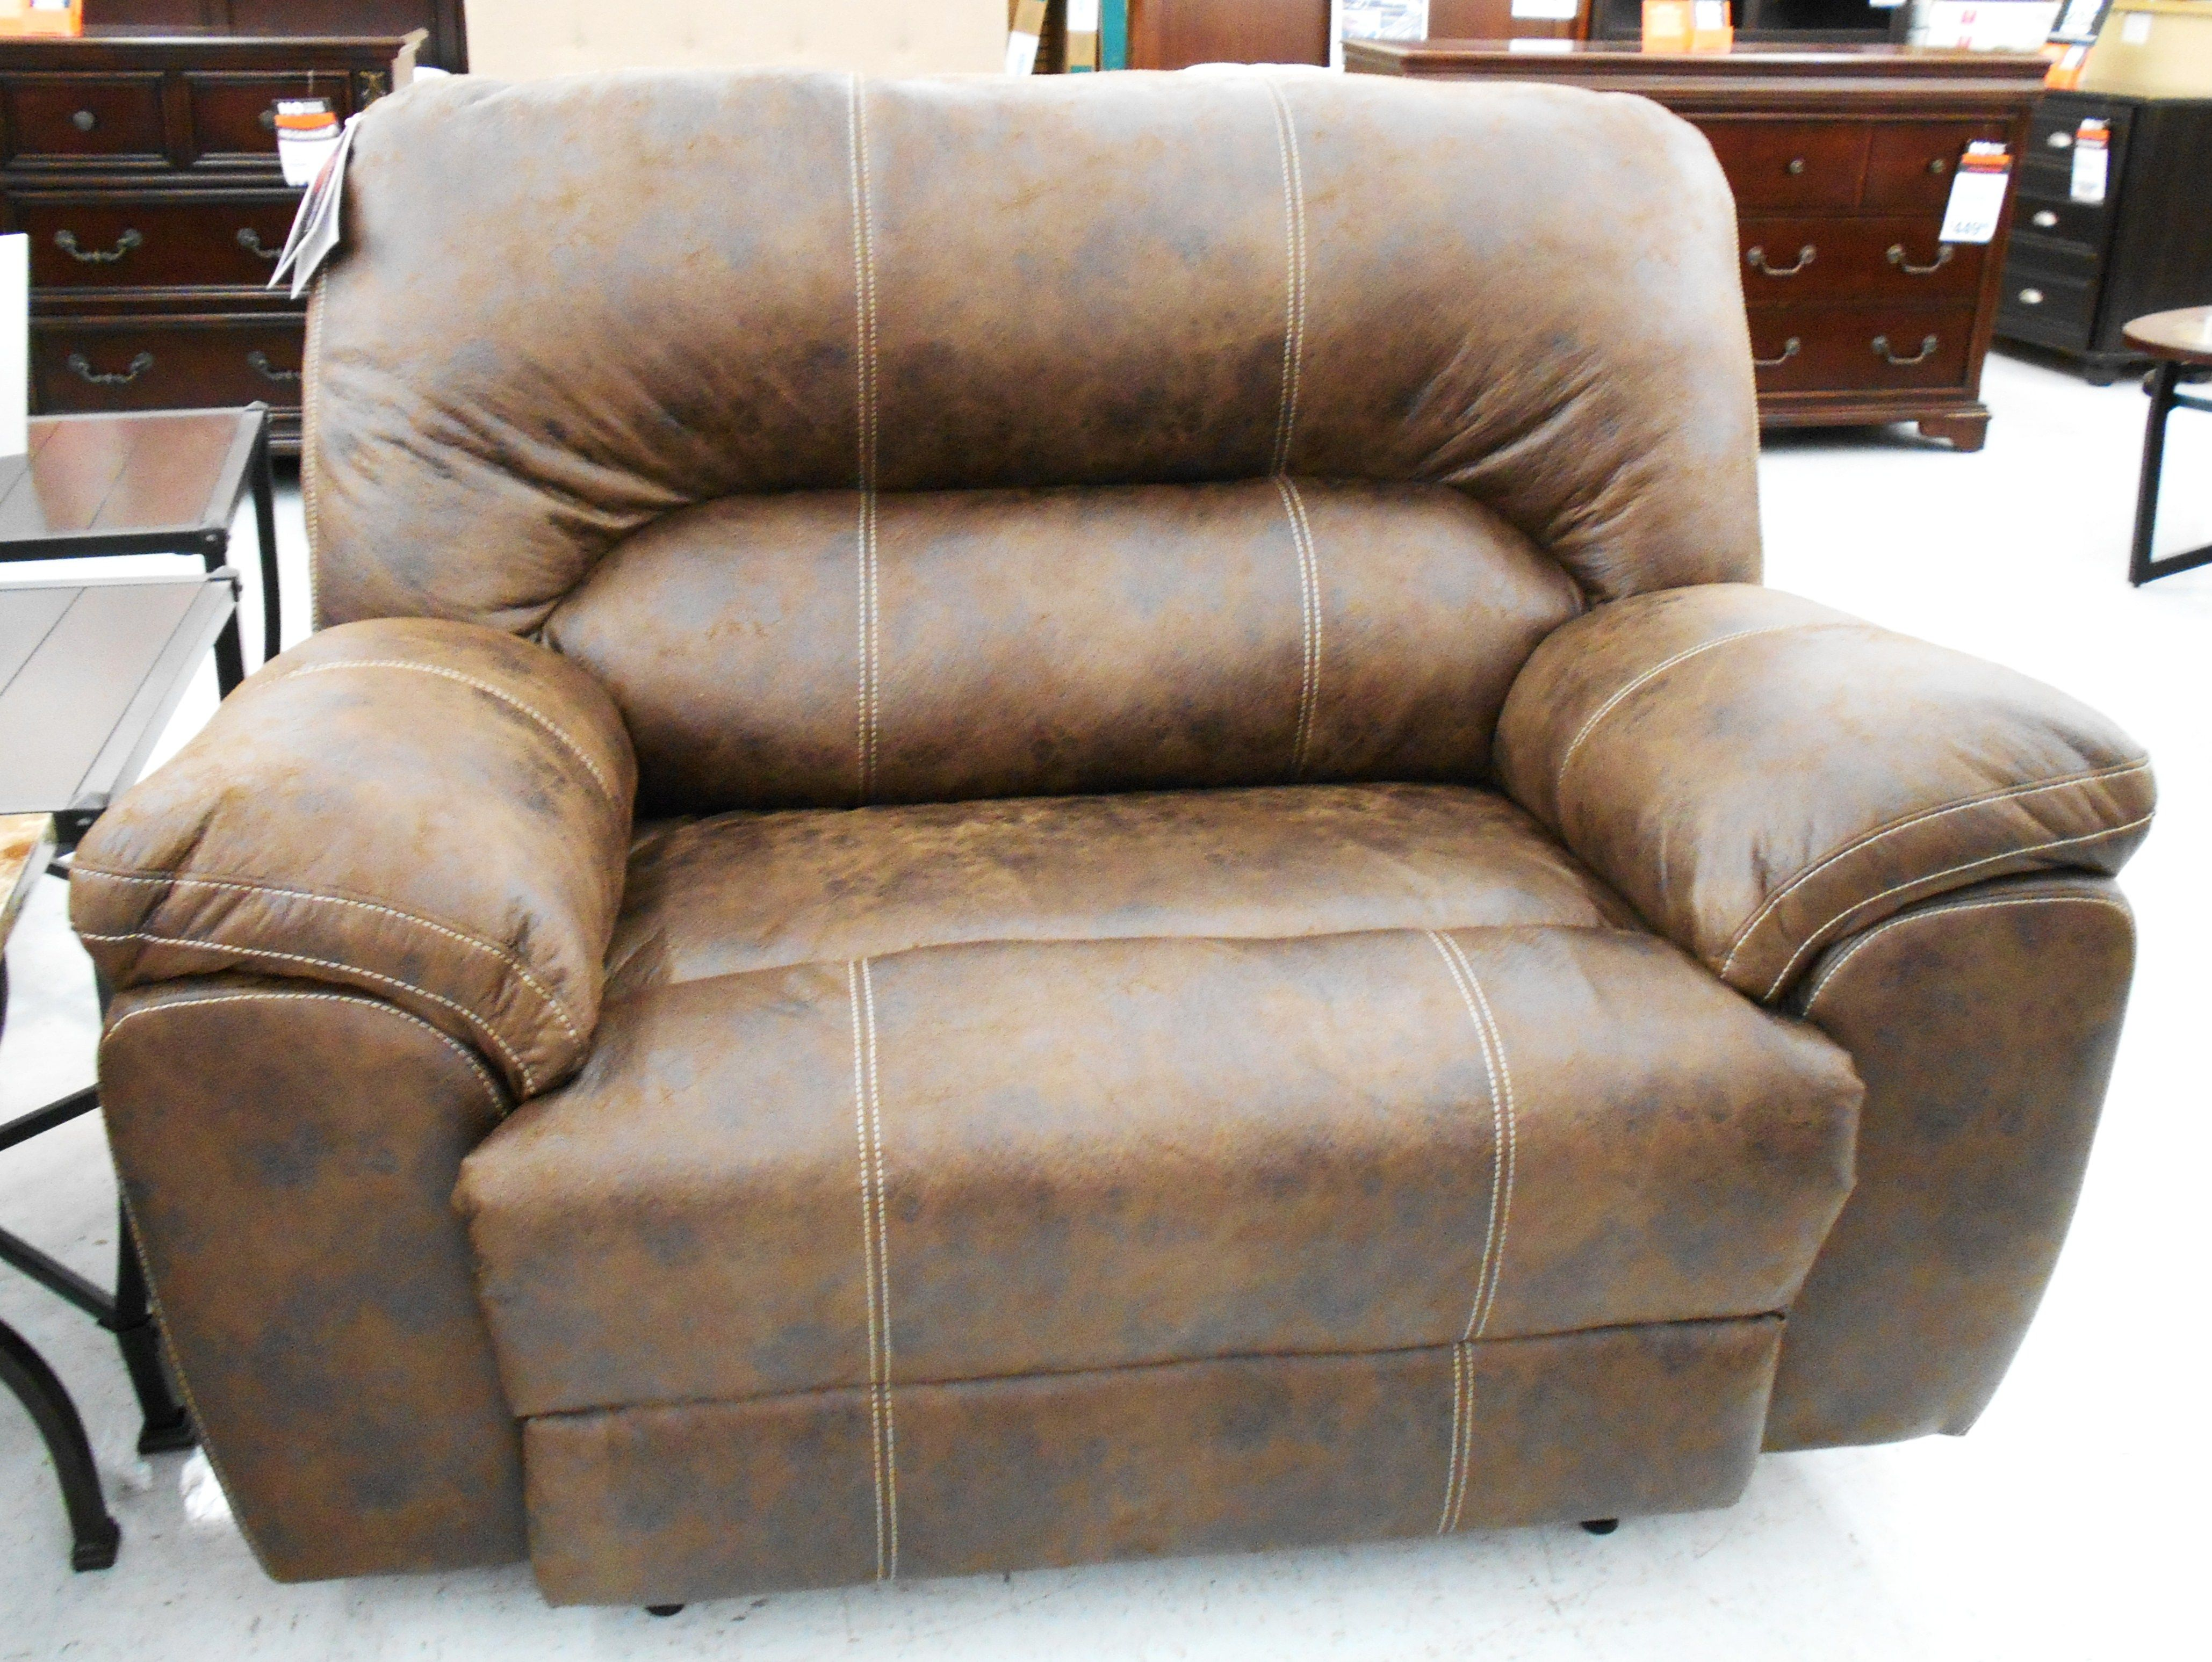 Stratolounger Stallion Snuggle Up Recliner $399.99 from Big Lots ...